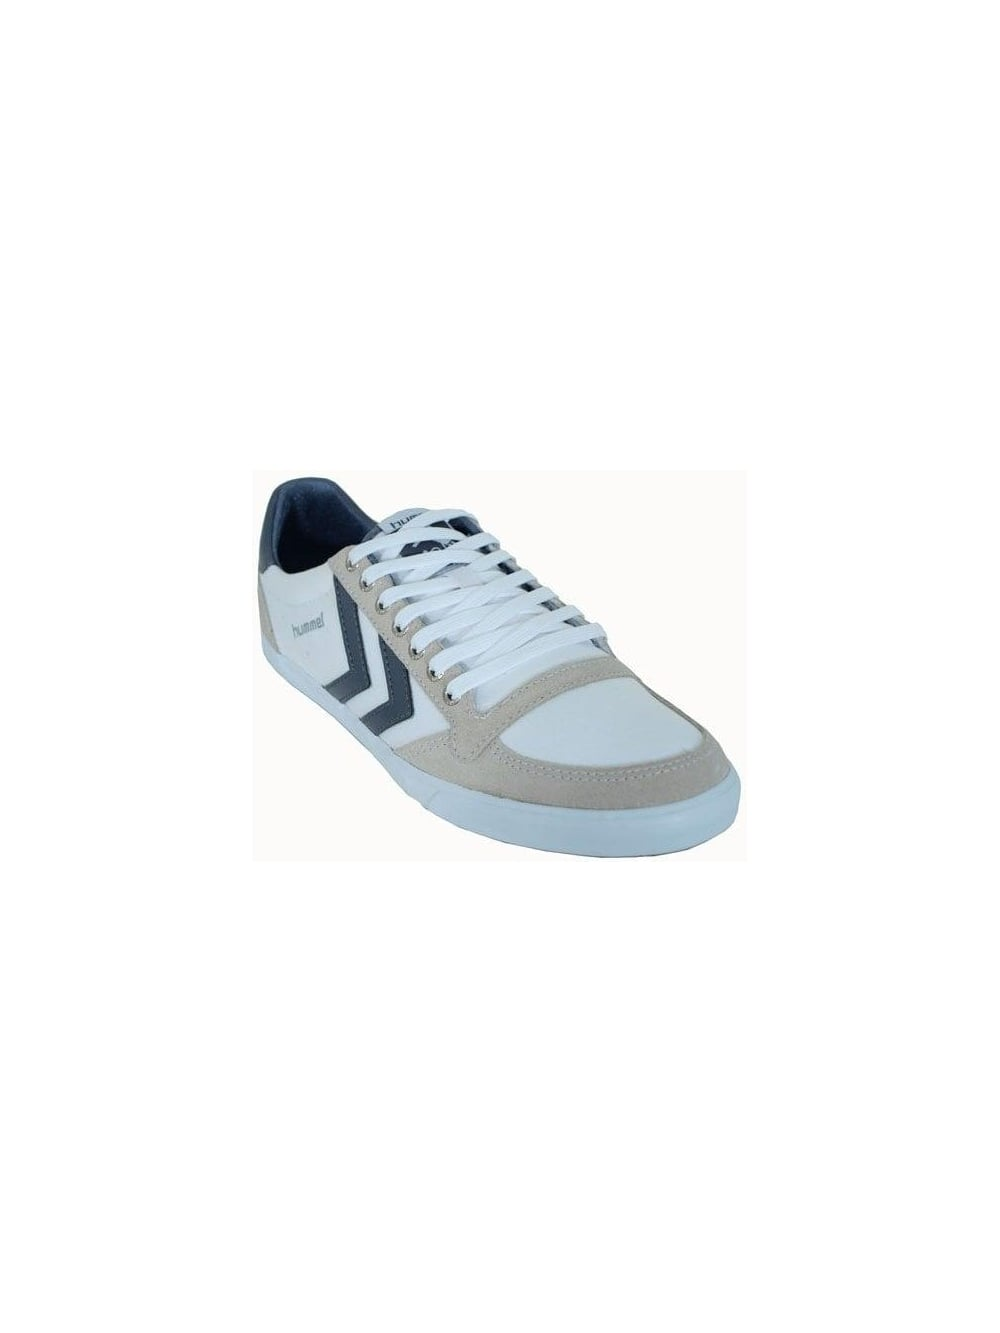 abf27016d6a4 Hummel Slimmer Stadil Canvas Low Top - Hummel   Northern Threads